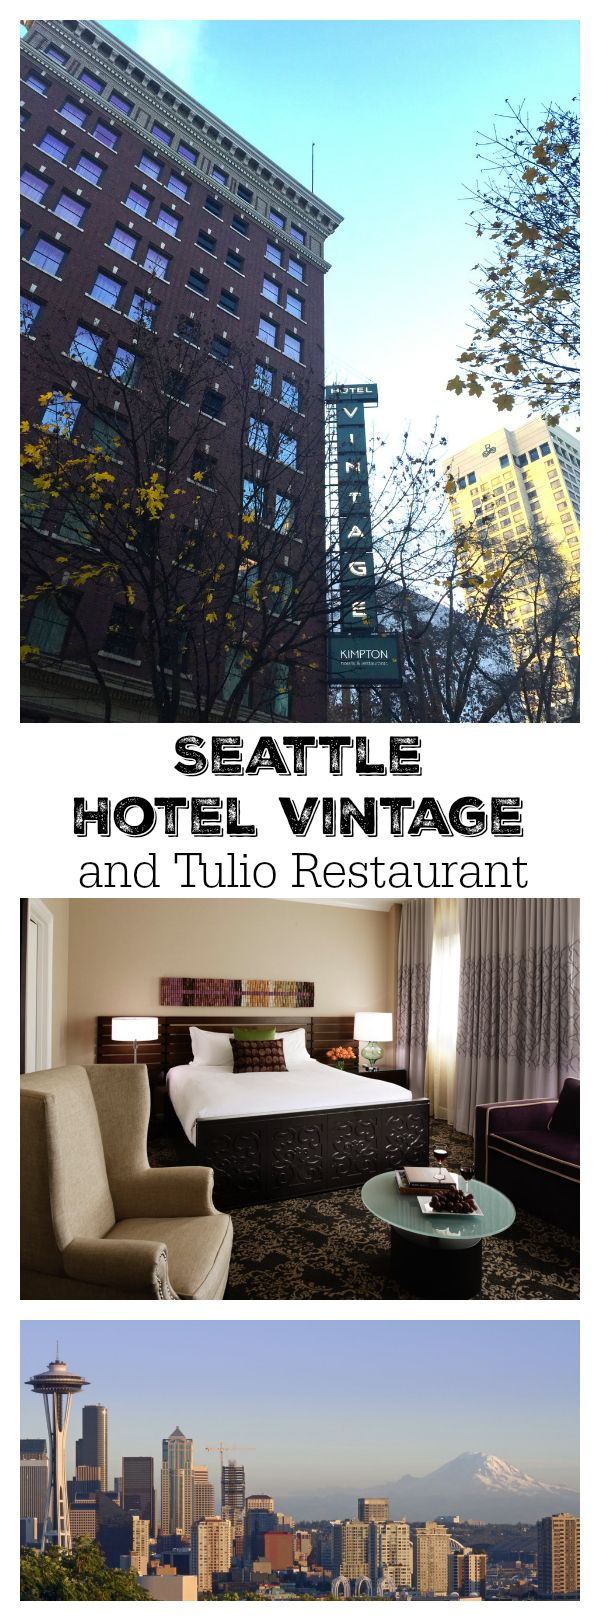 Seattle Hotel Vintage and Tulio Restaurant